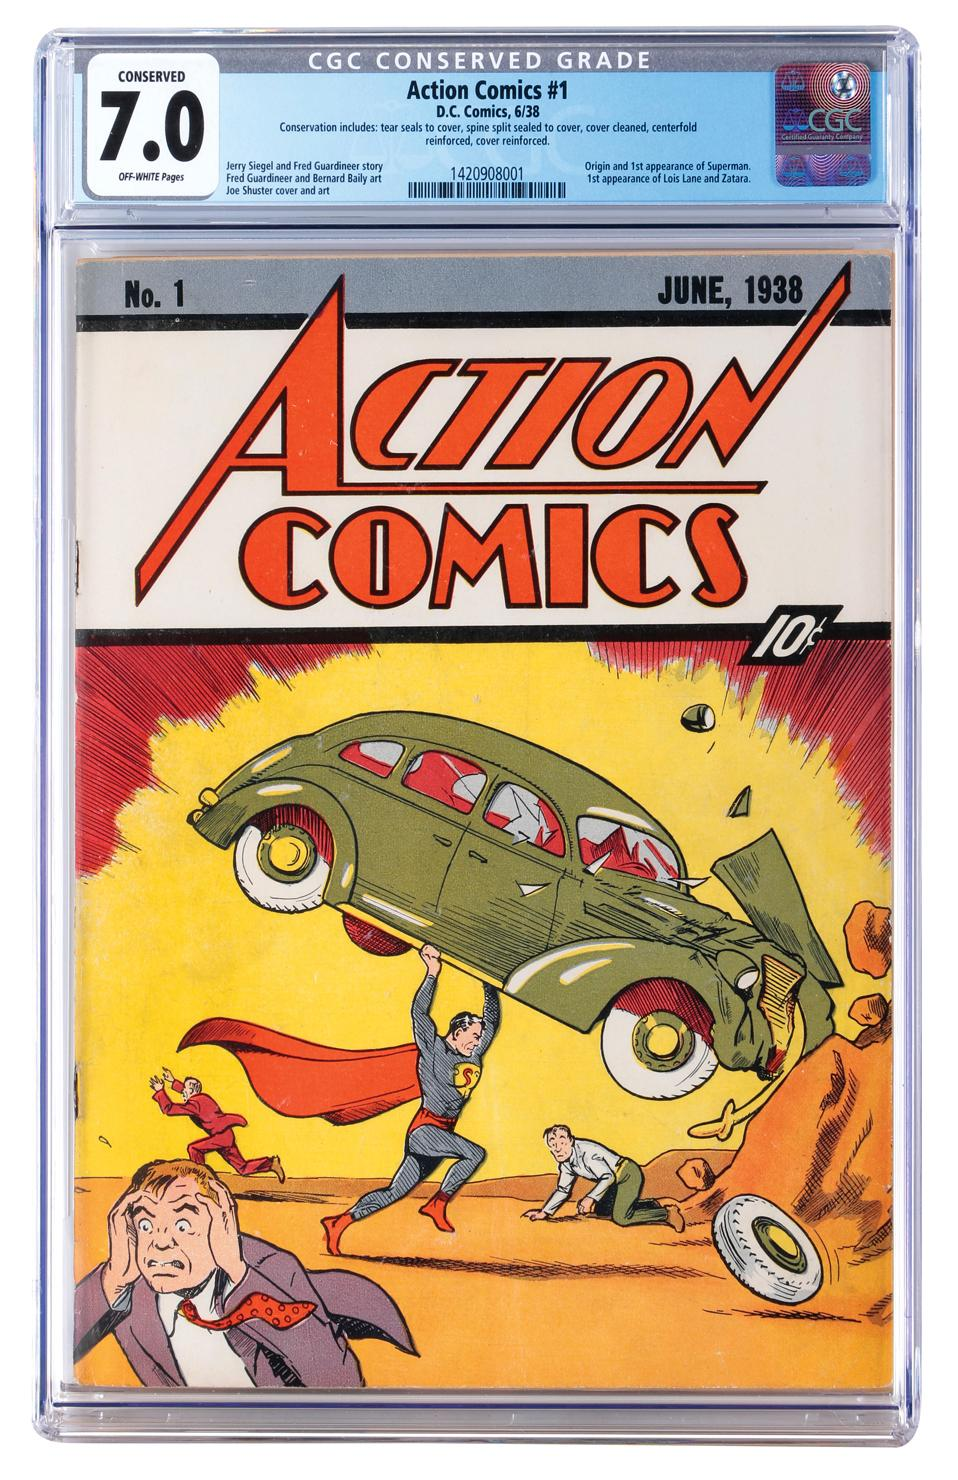 This image released by Profiles in History shows a June 1938 Action Comics #1 issue, one of many Superman items up for auction on Dec. 19 in Los Angeles. (Profiles in History via AP)